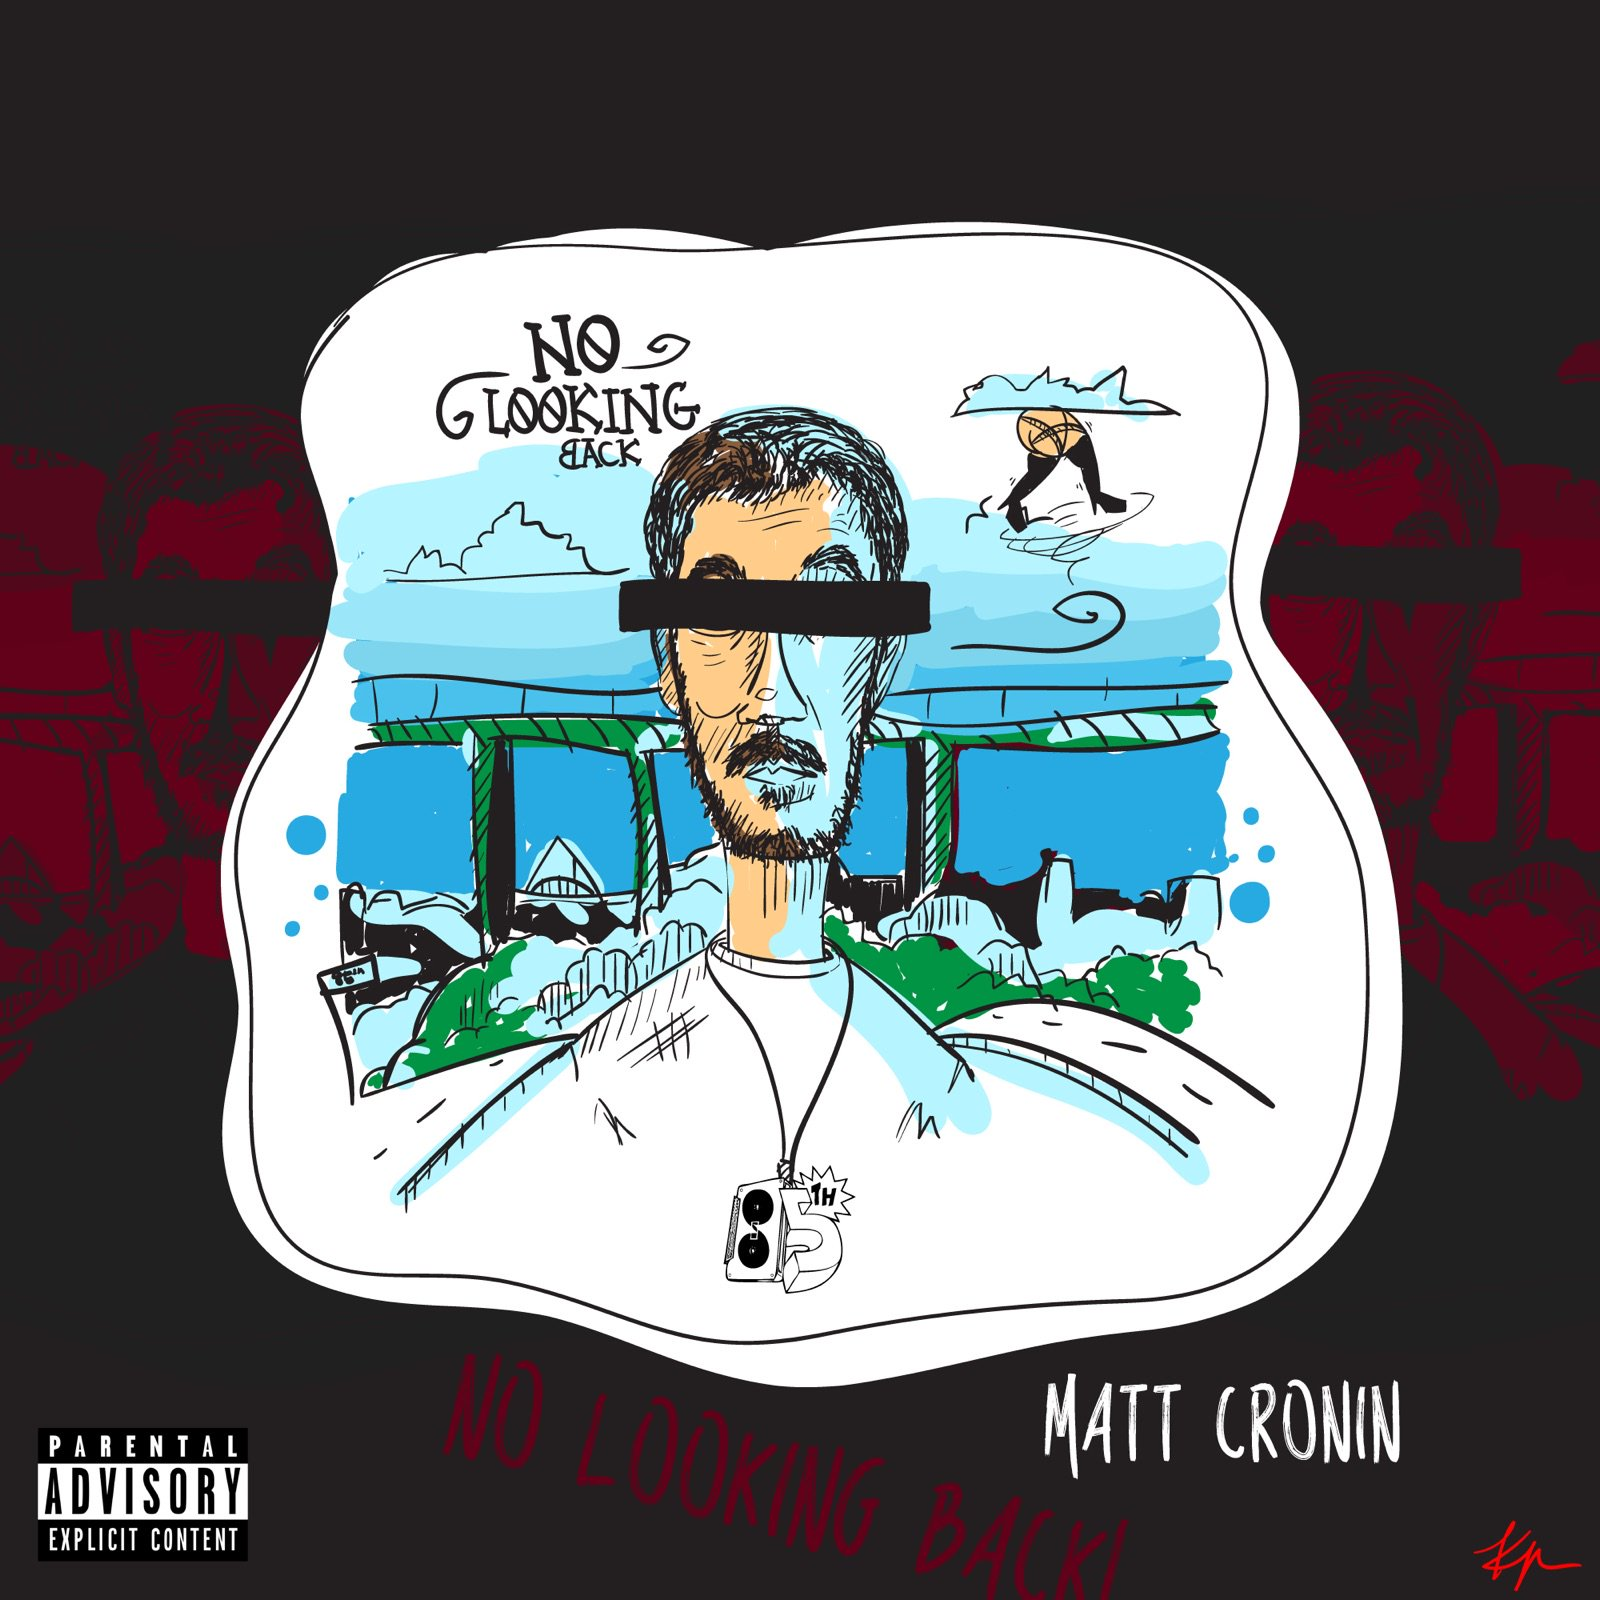 New Music: Matt Cronin – No Looking Back